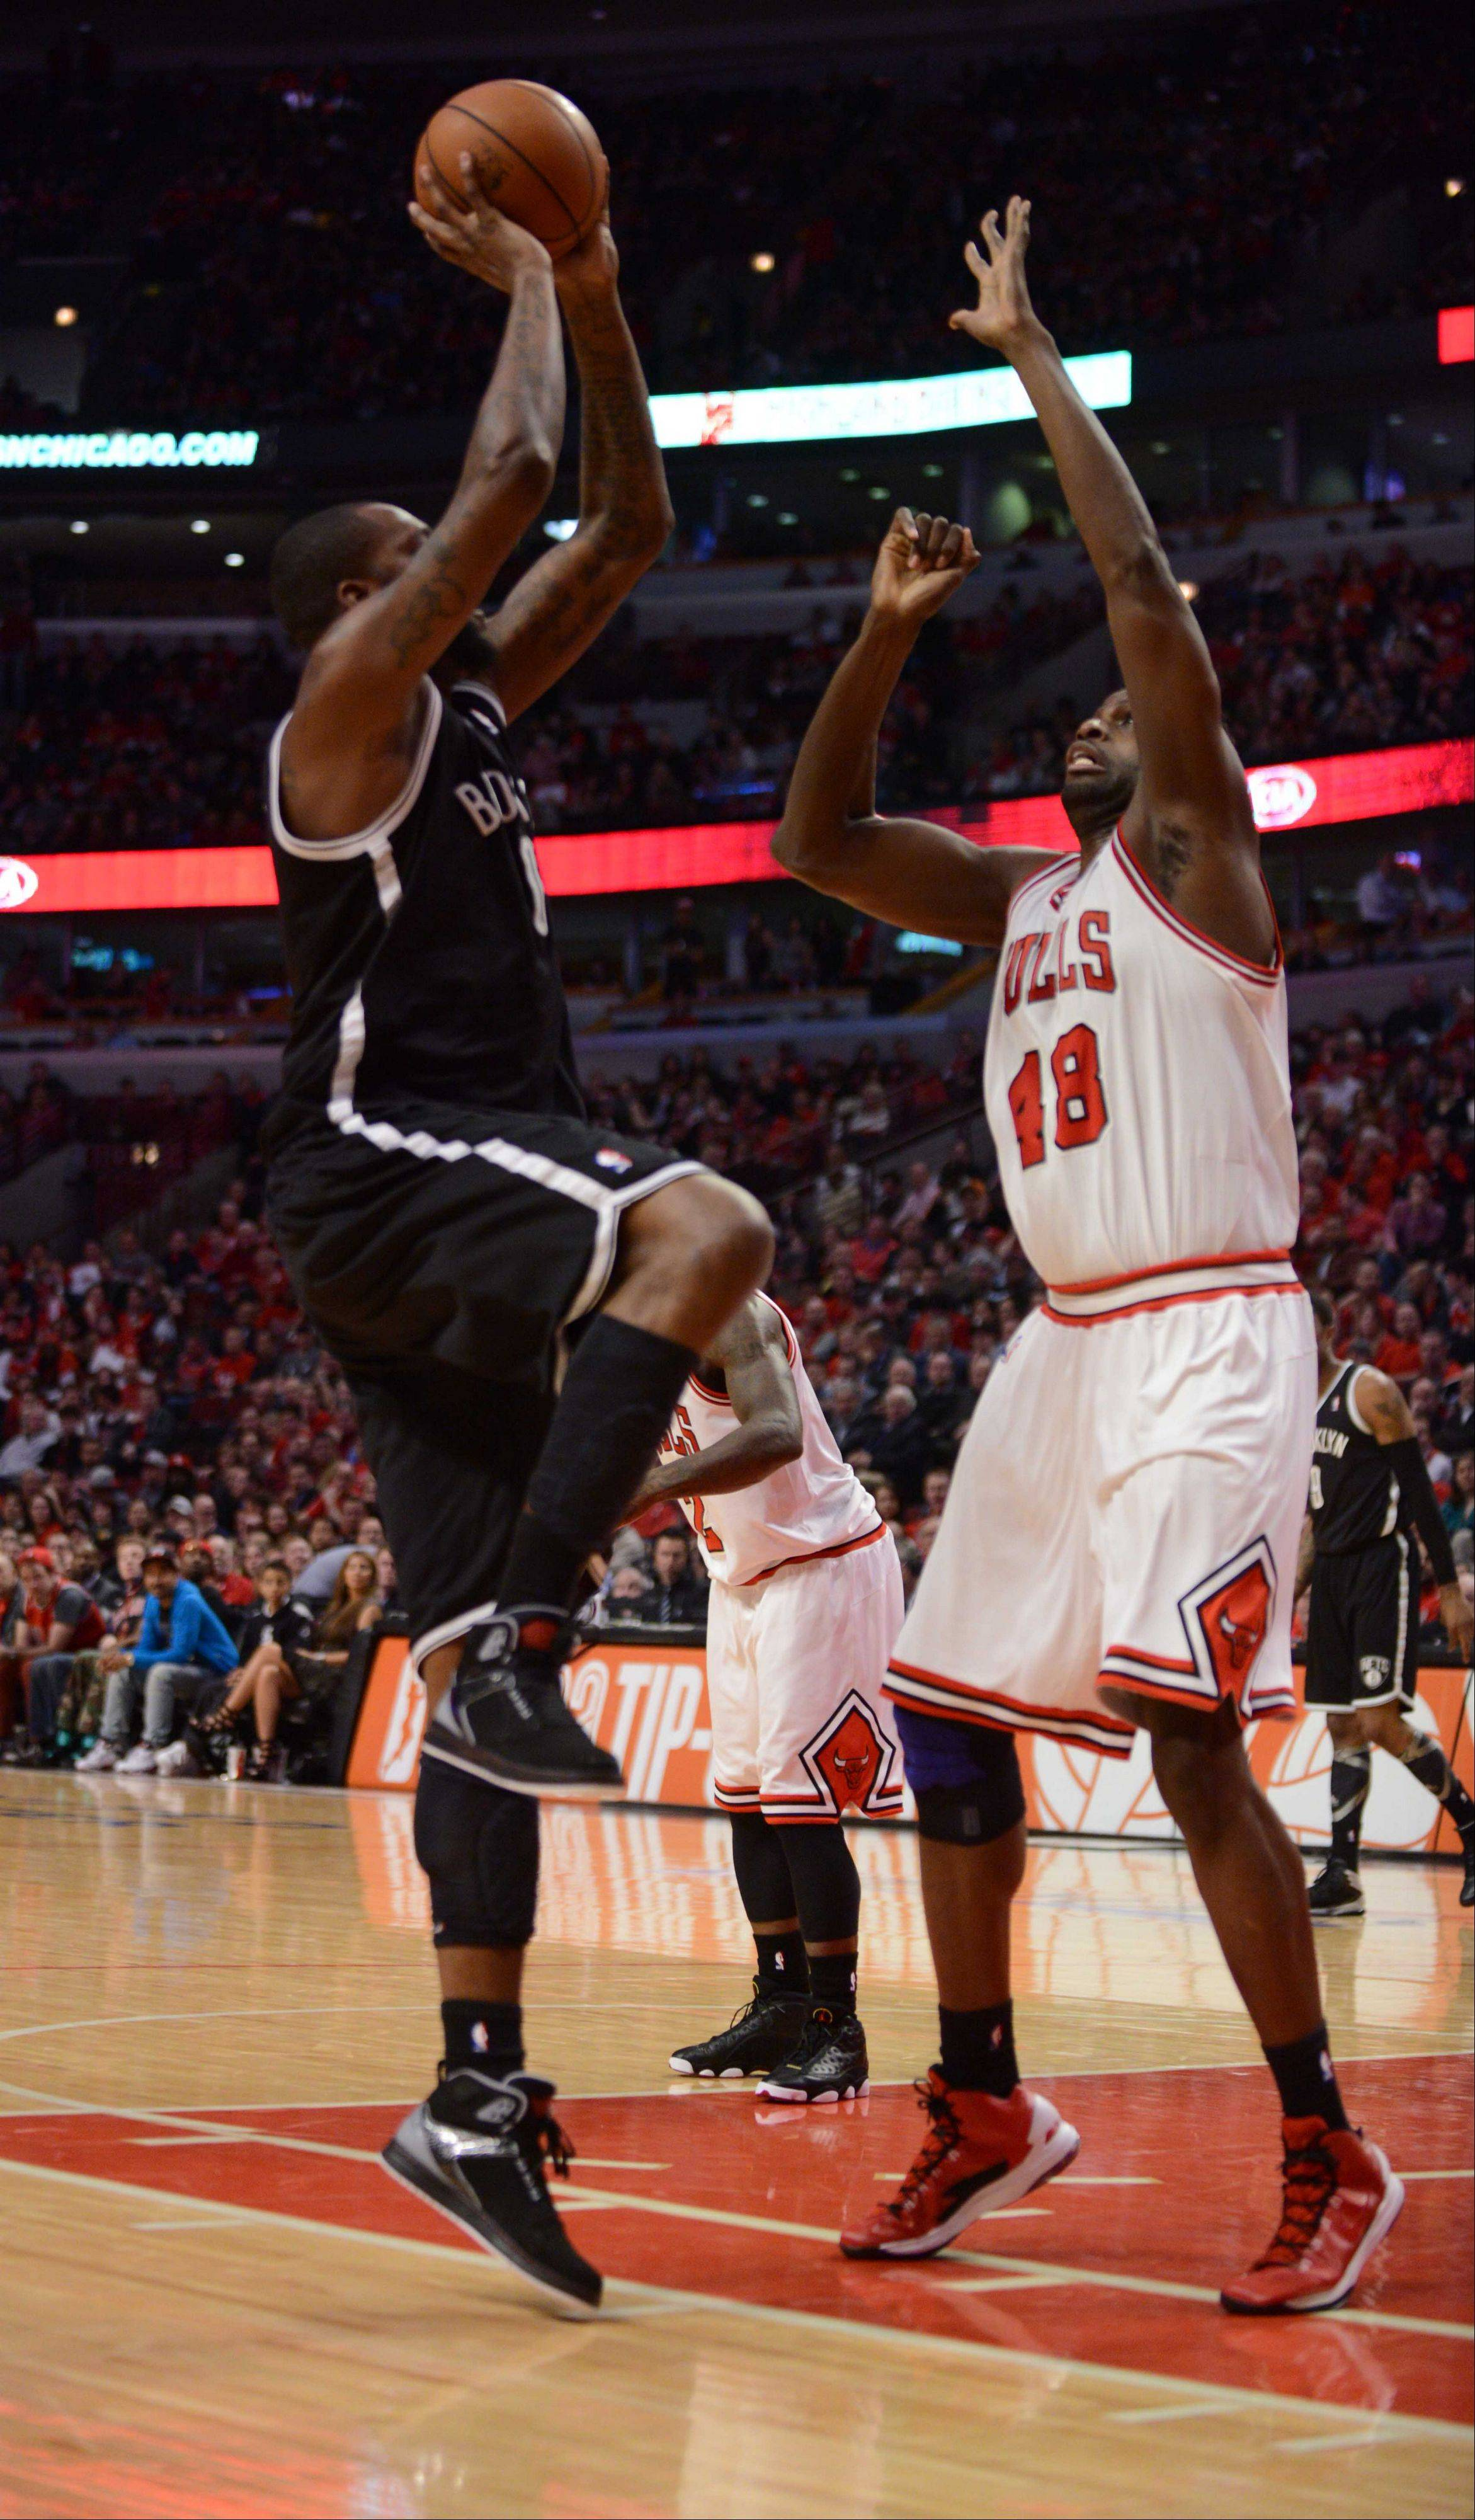 Bulls' defense stifling Nets